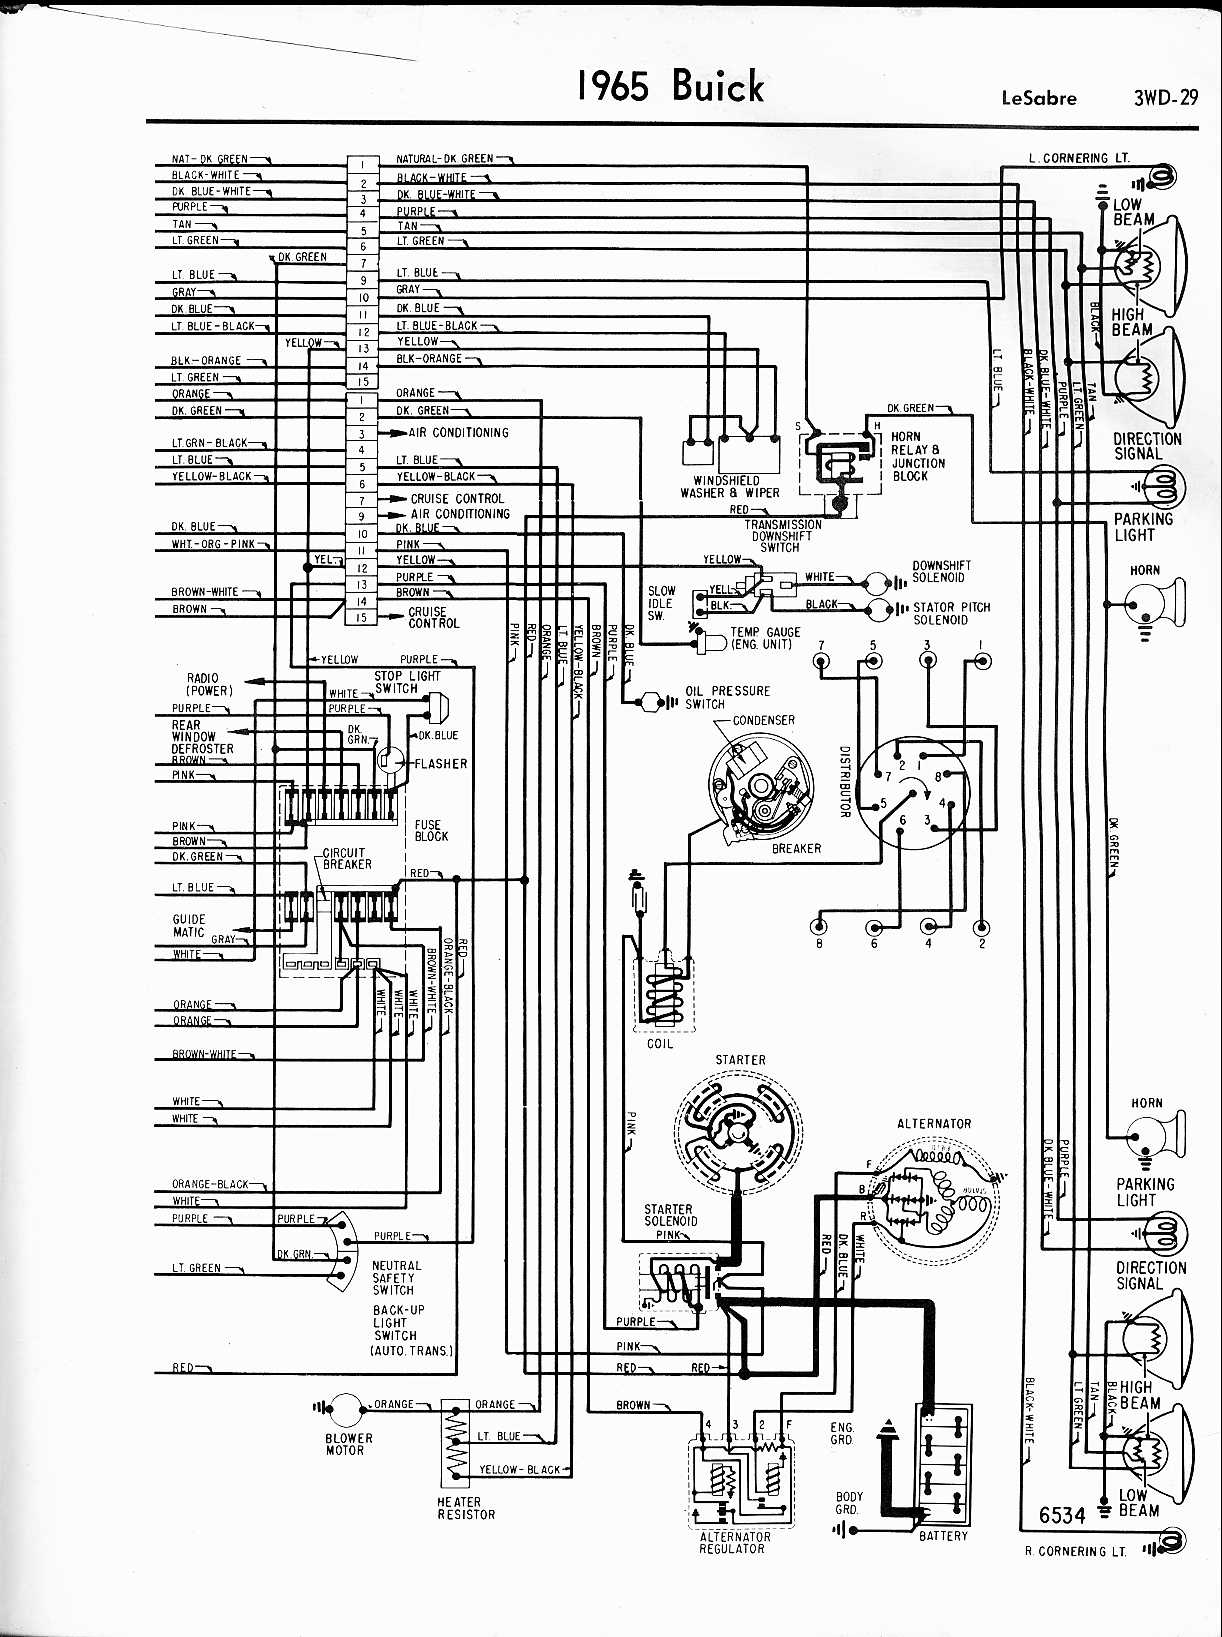 71 buick wiring diagram 71 impala wiring diagram fuse box 1991 oldsmobile cutlass supreme | wiring library